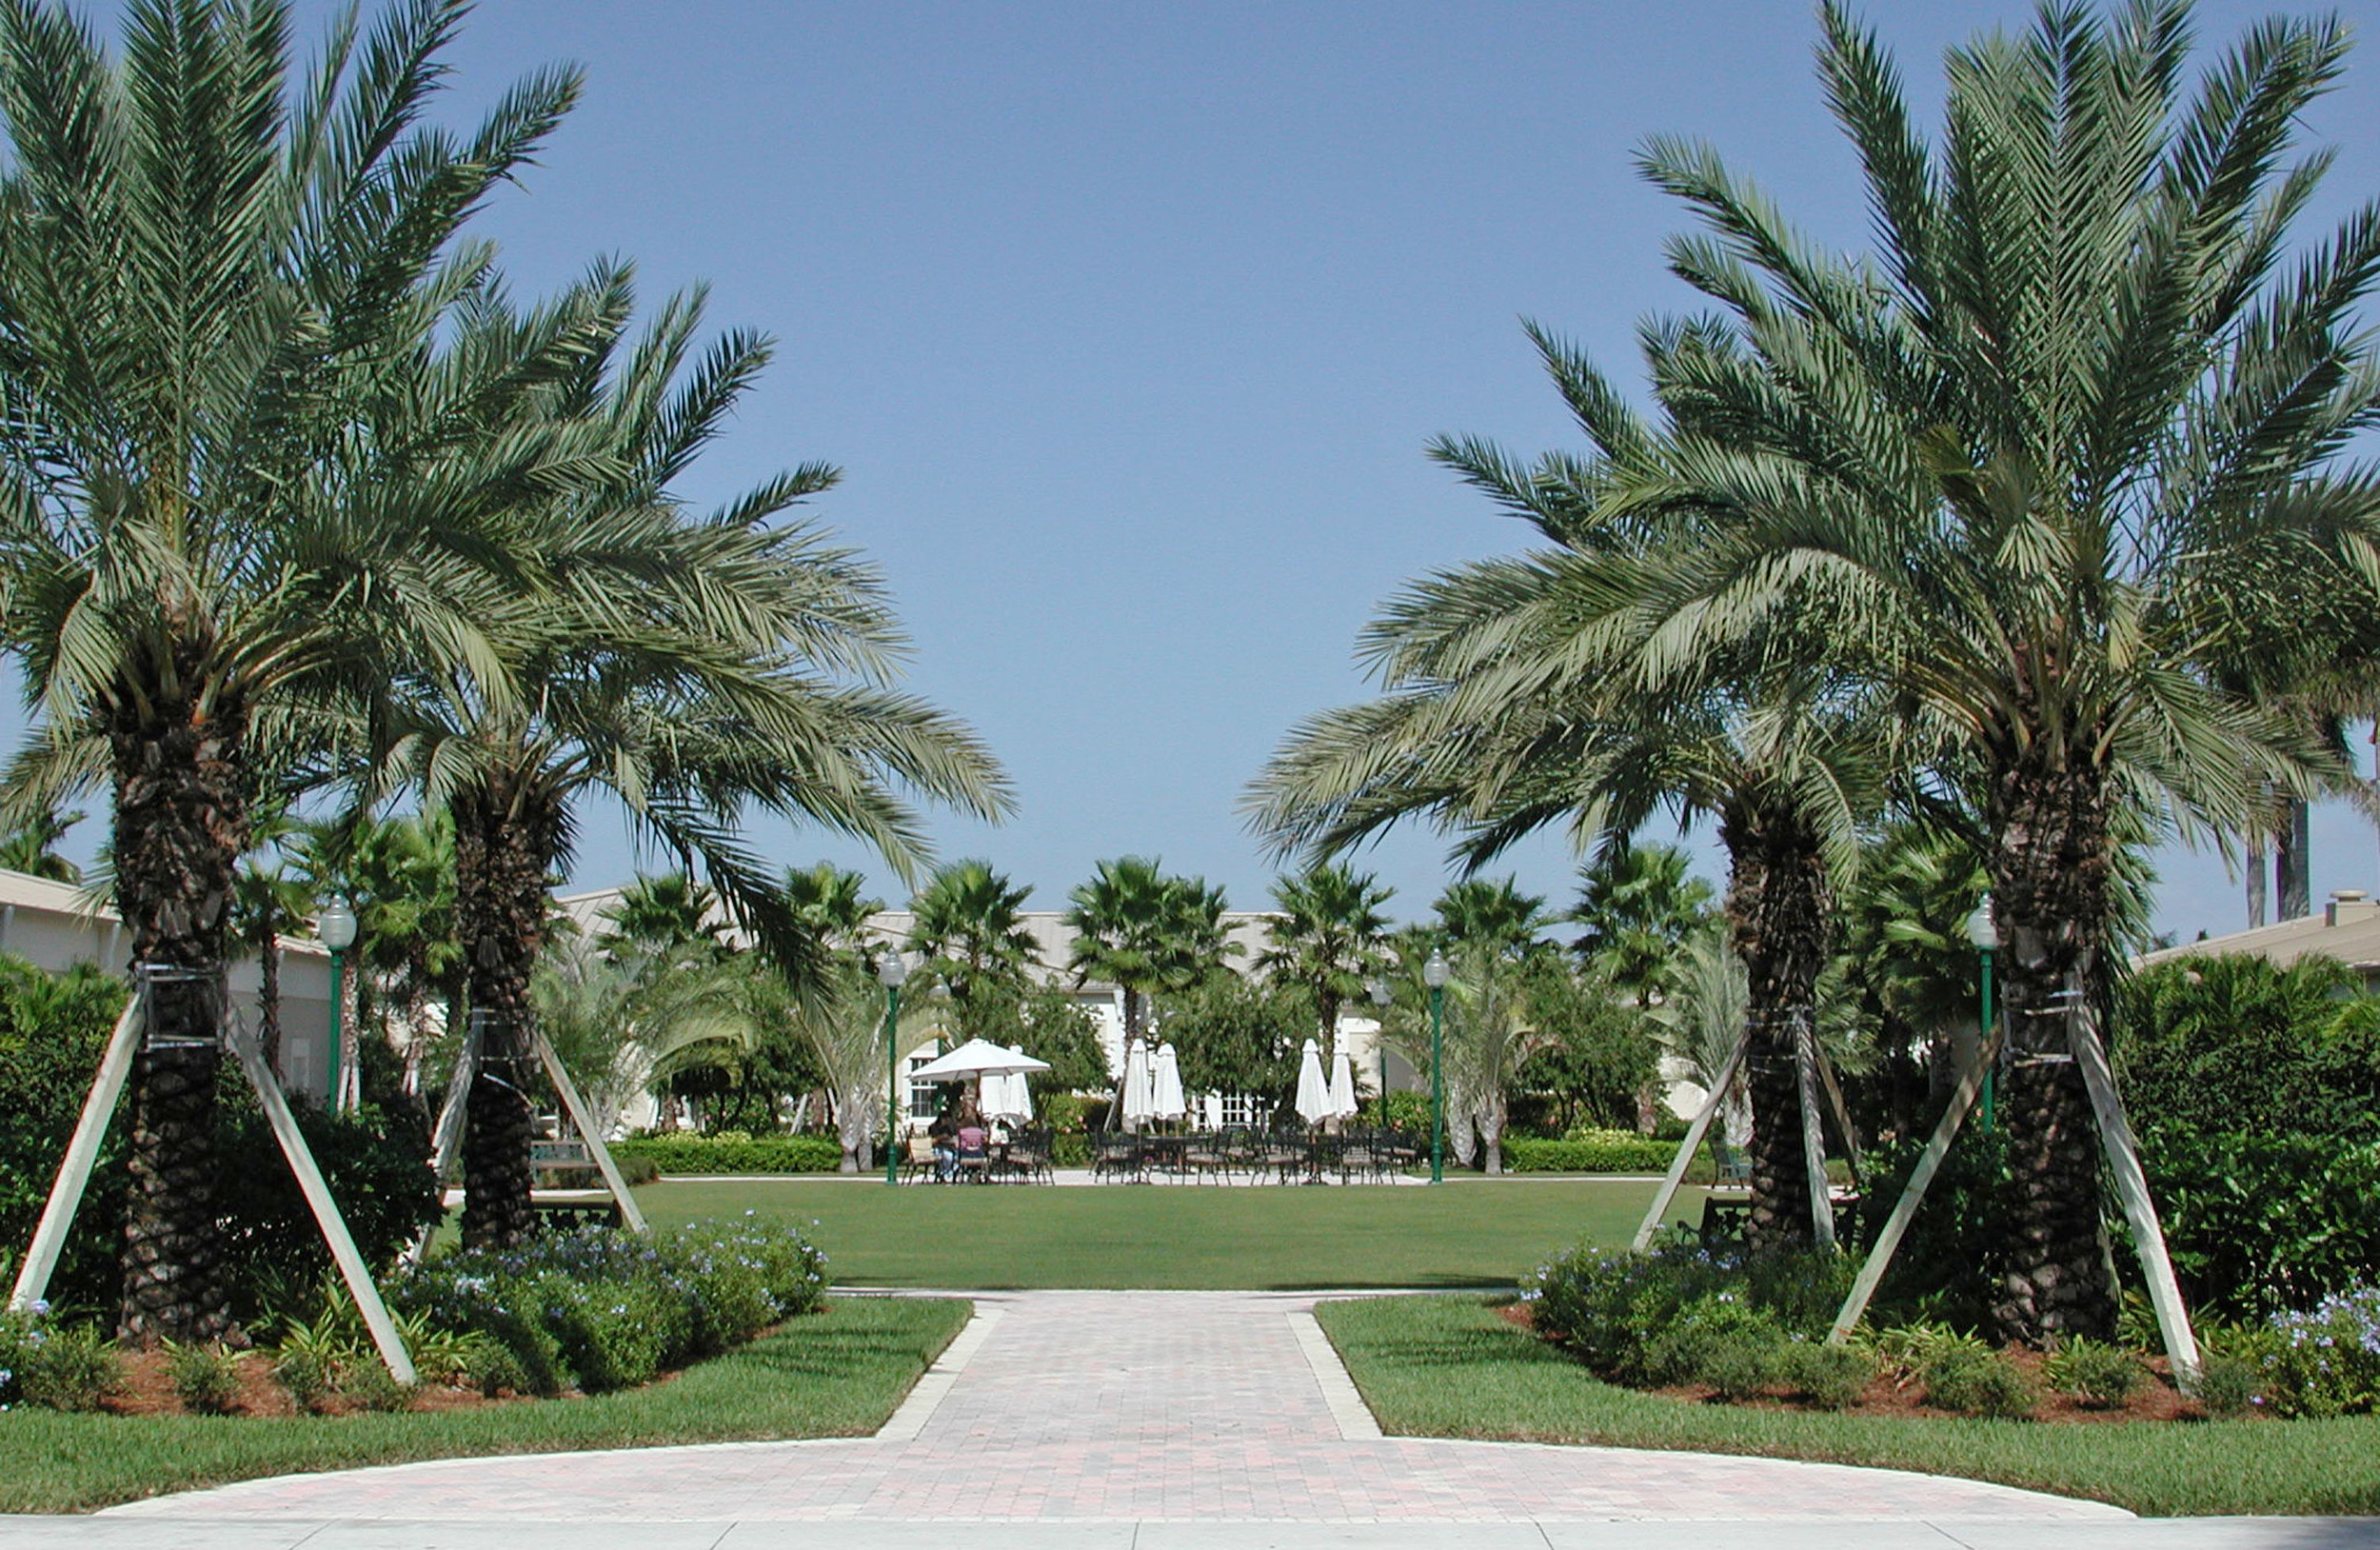 Open Lawn and Date Palms at Christ Fellowship Church Landscaping PBG.jpg